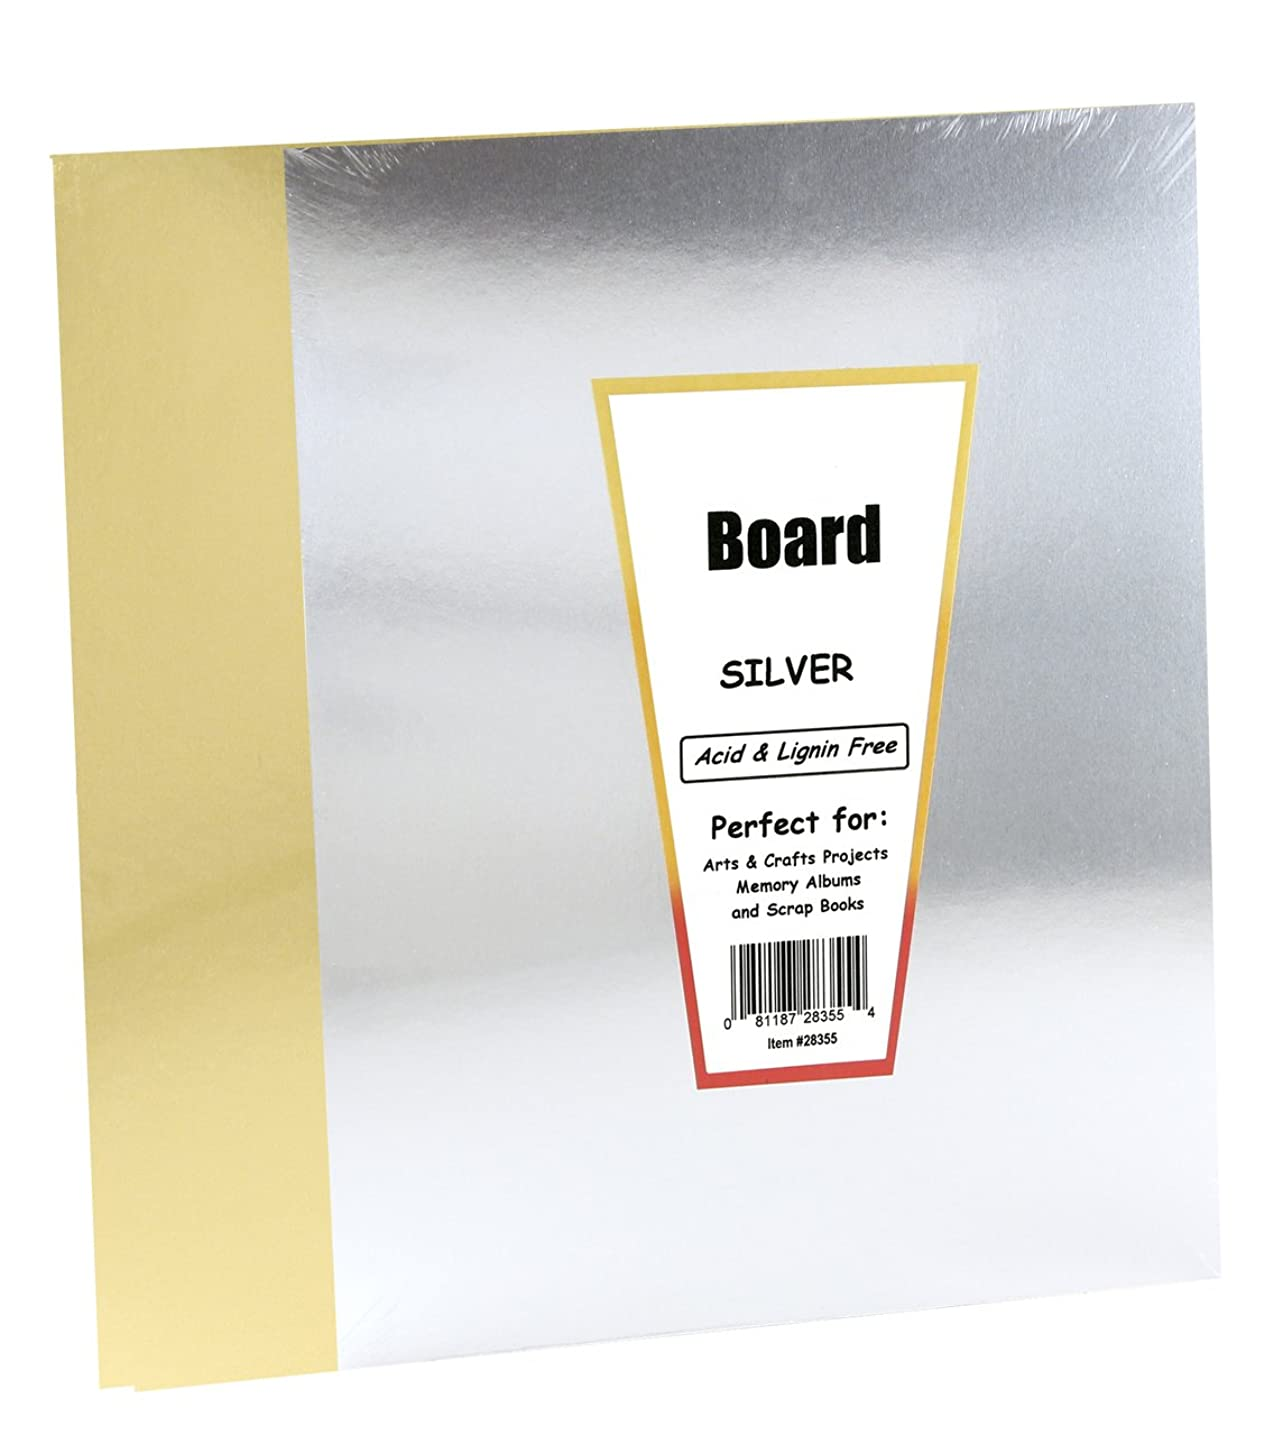 Hygloss Products 851 Metallic Foil Board-10 Sheets, 8.5